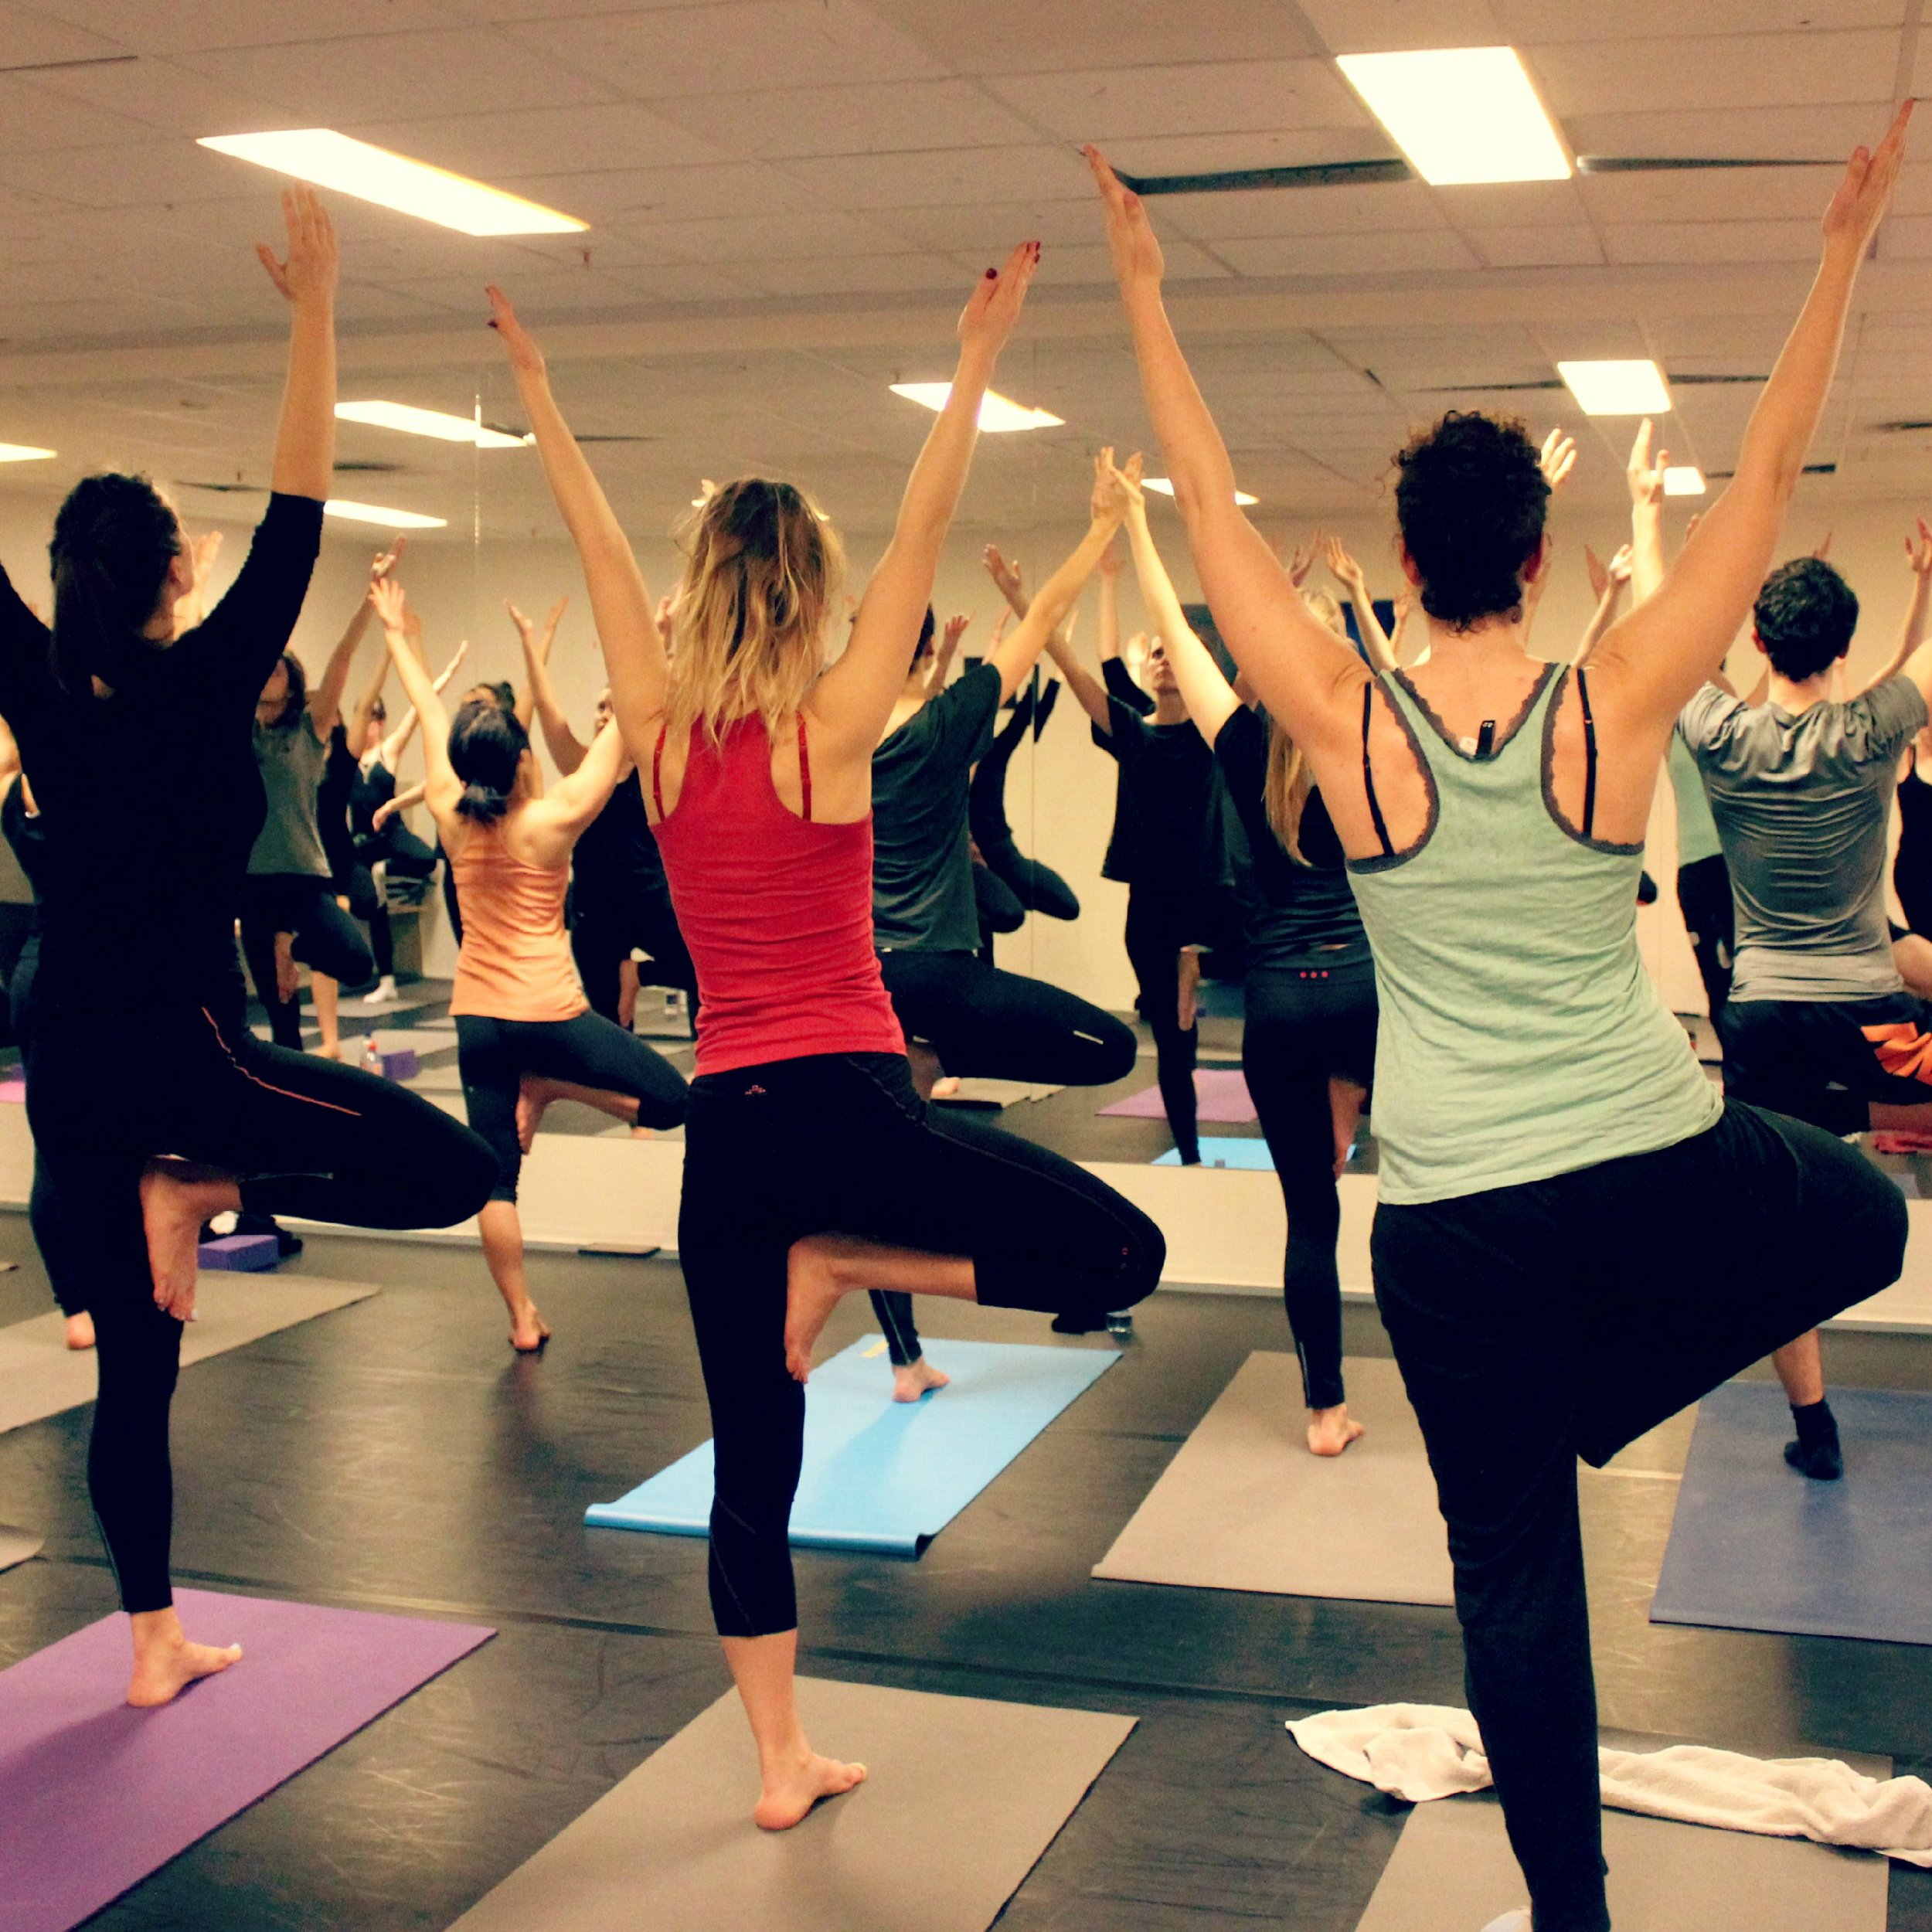 Get in touch - Facebook: CBS YogaInstagramStudent citizenship guidelines